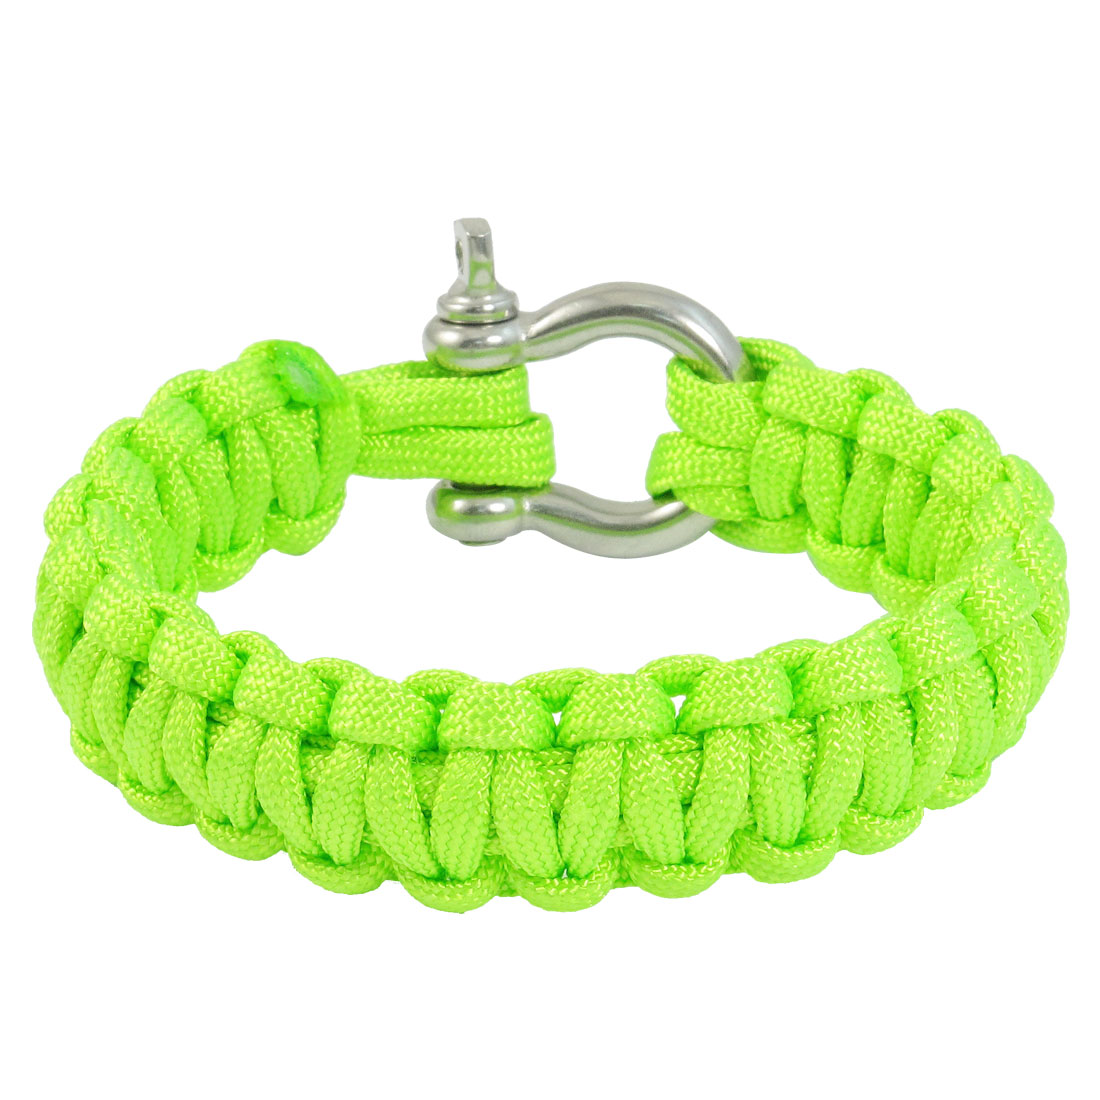 Outdoor Activities Stainless Steel Shackle Bright Green Survival Bracelet